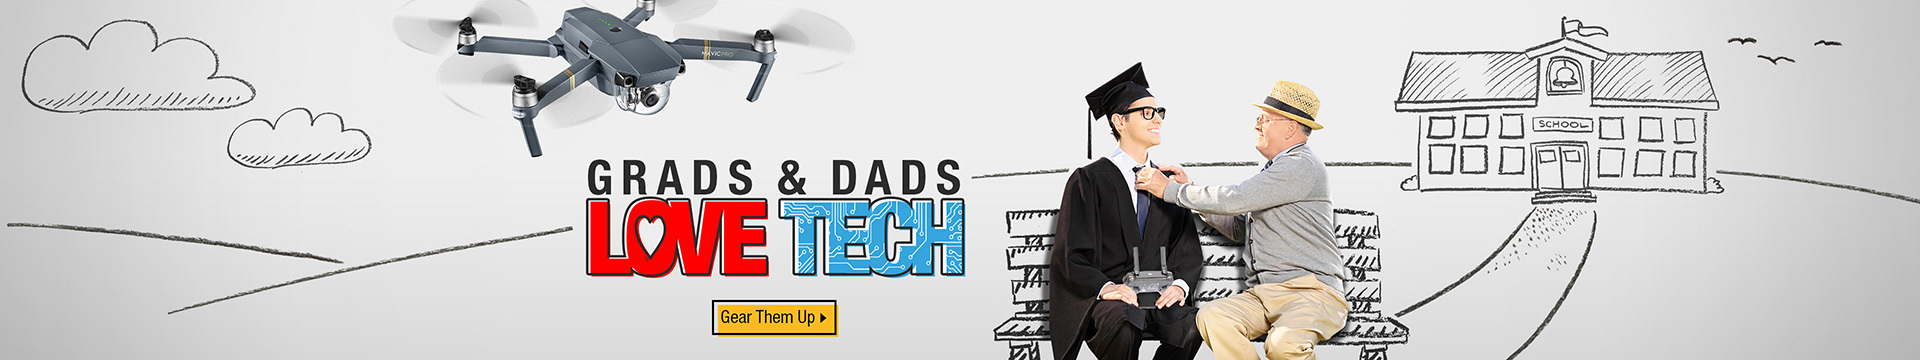 Grads and Dads Love Tech